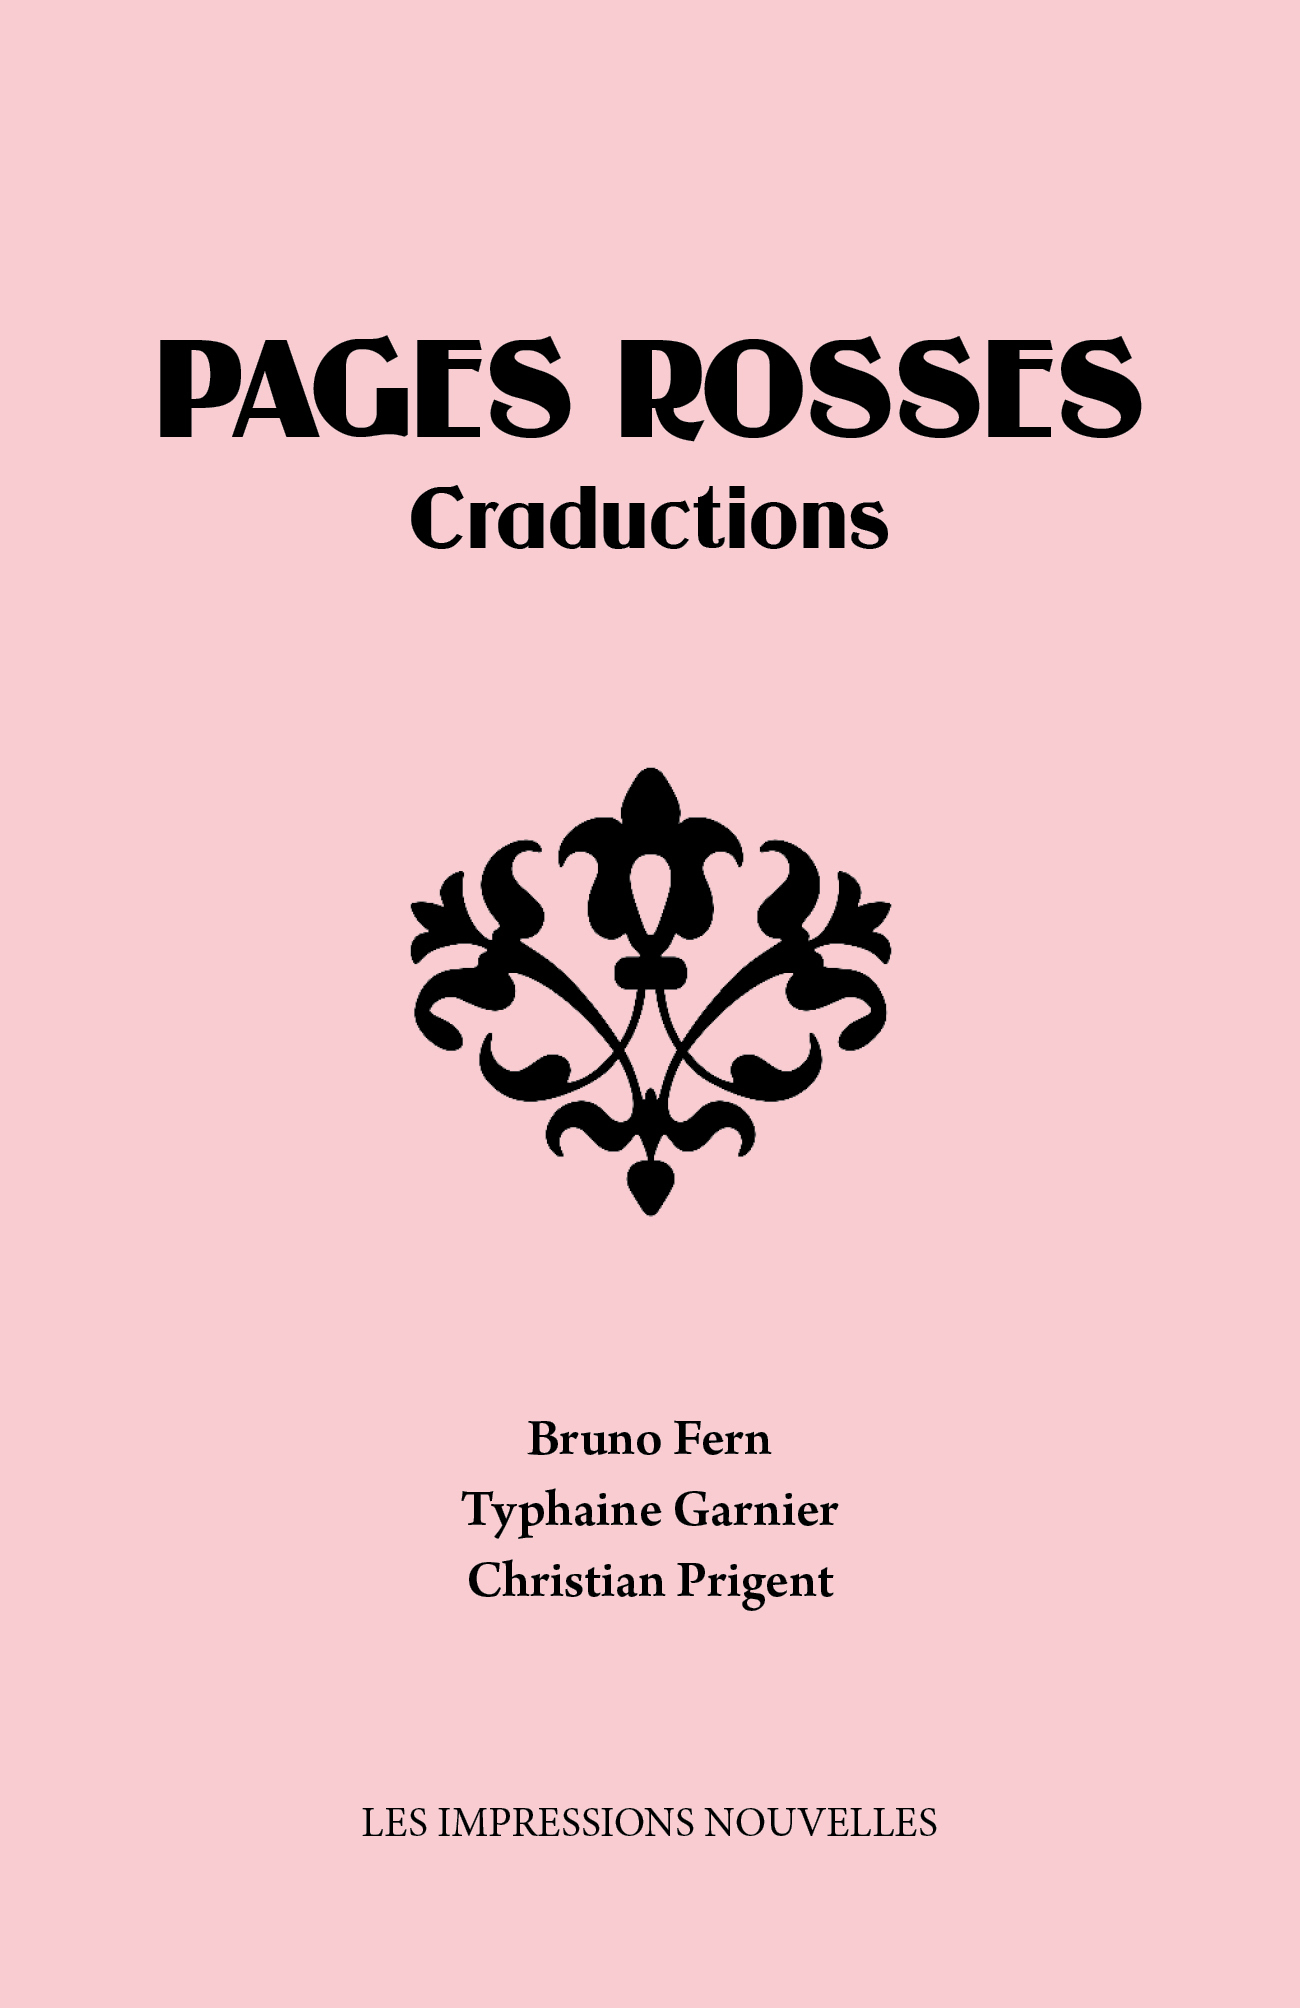 PAGES ROSSES - CRADUCTIONS